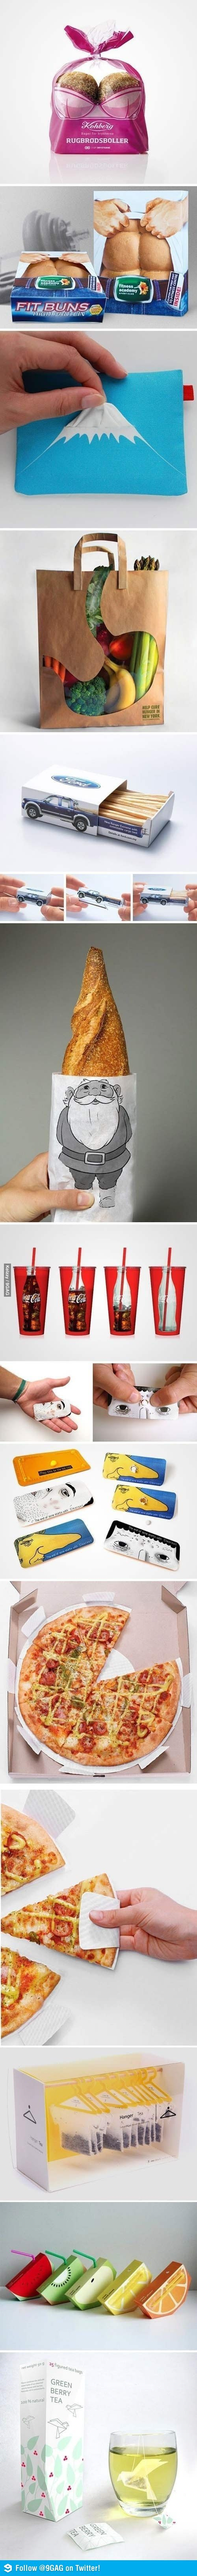 Sabor! These are clever